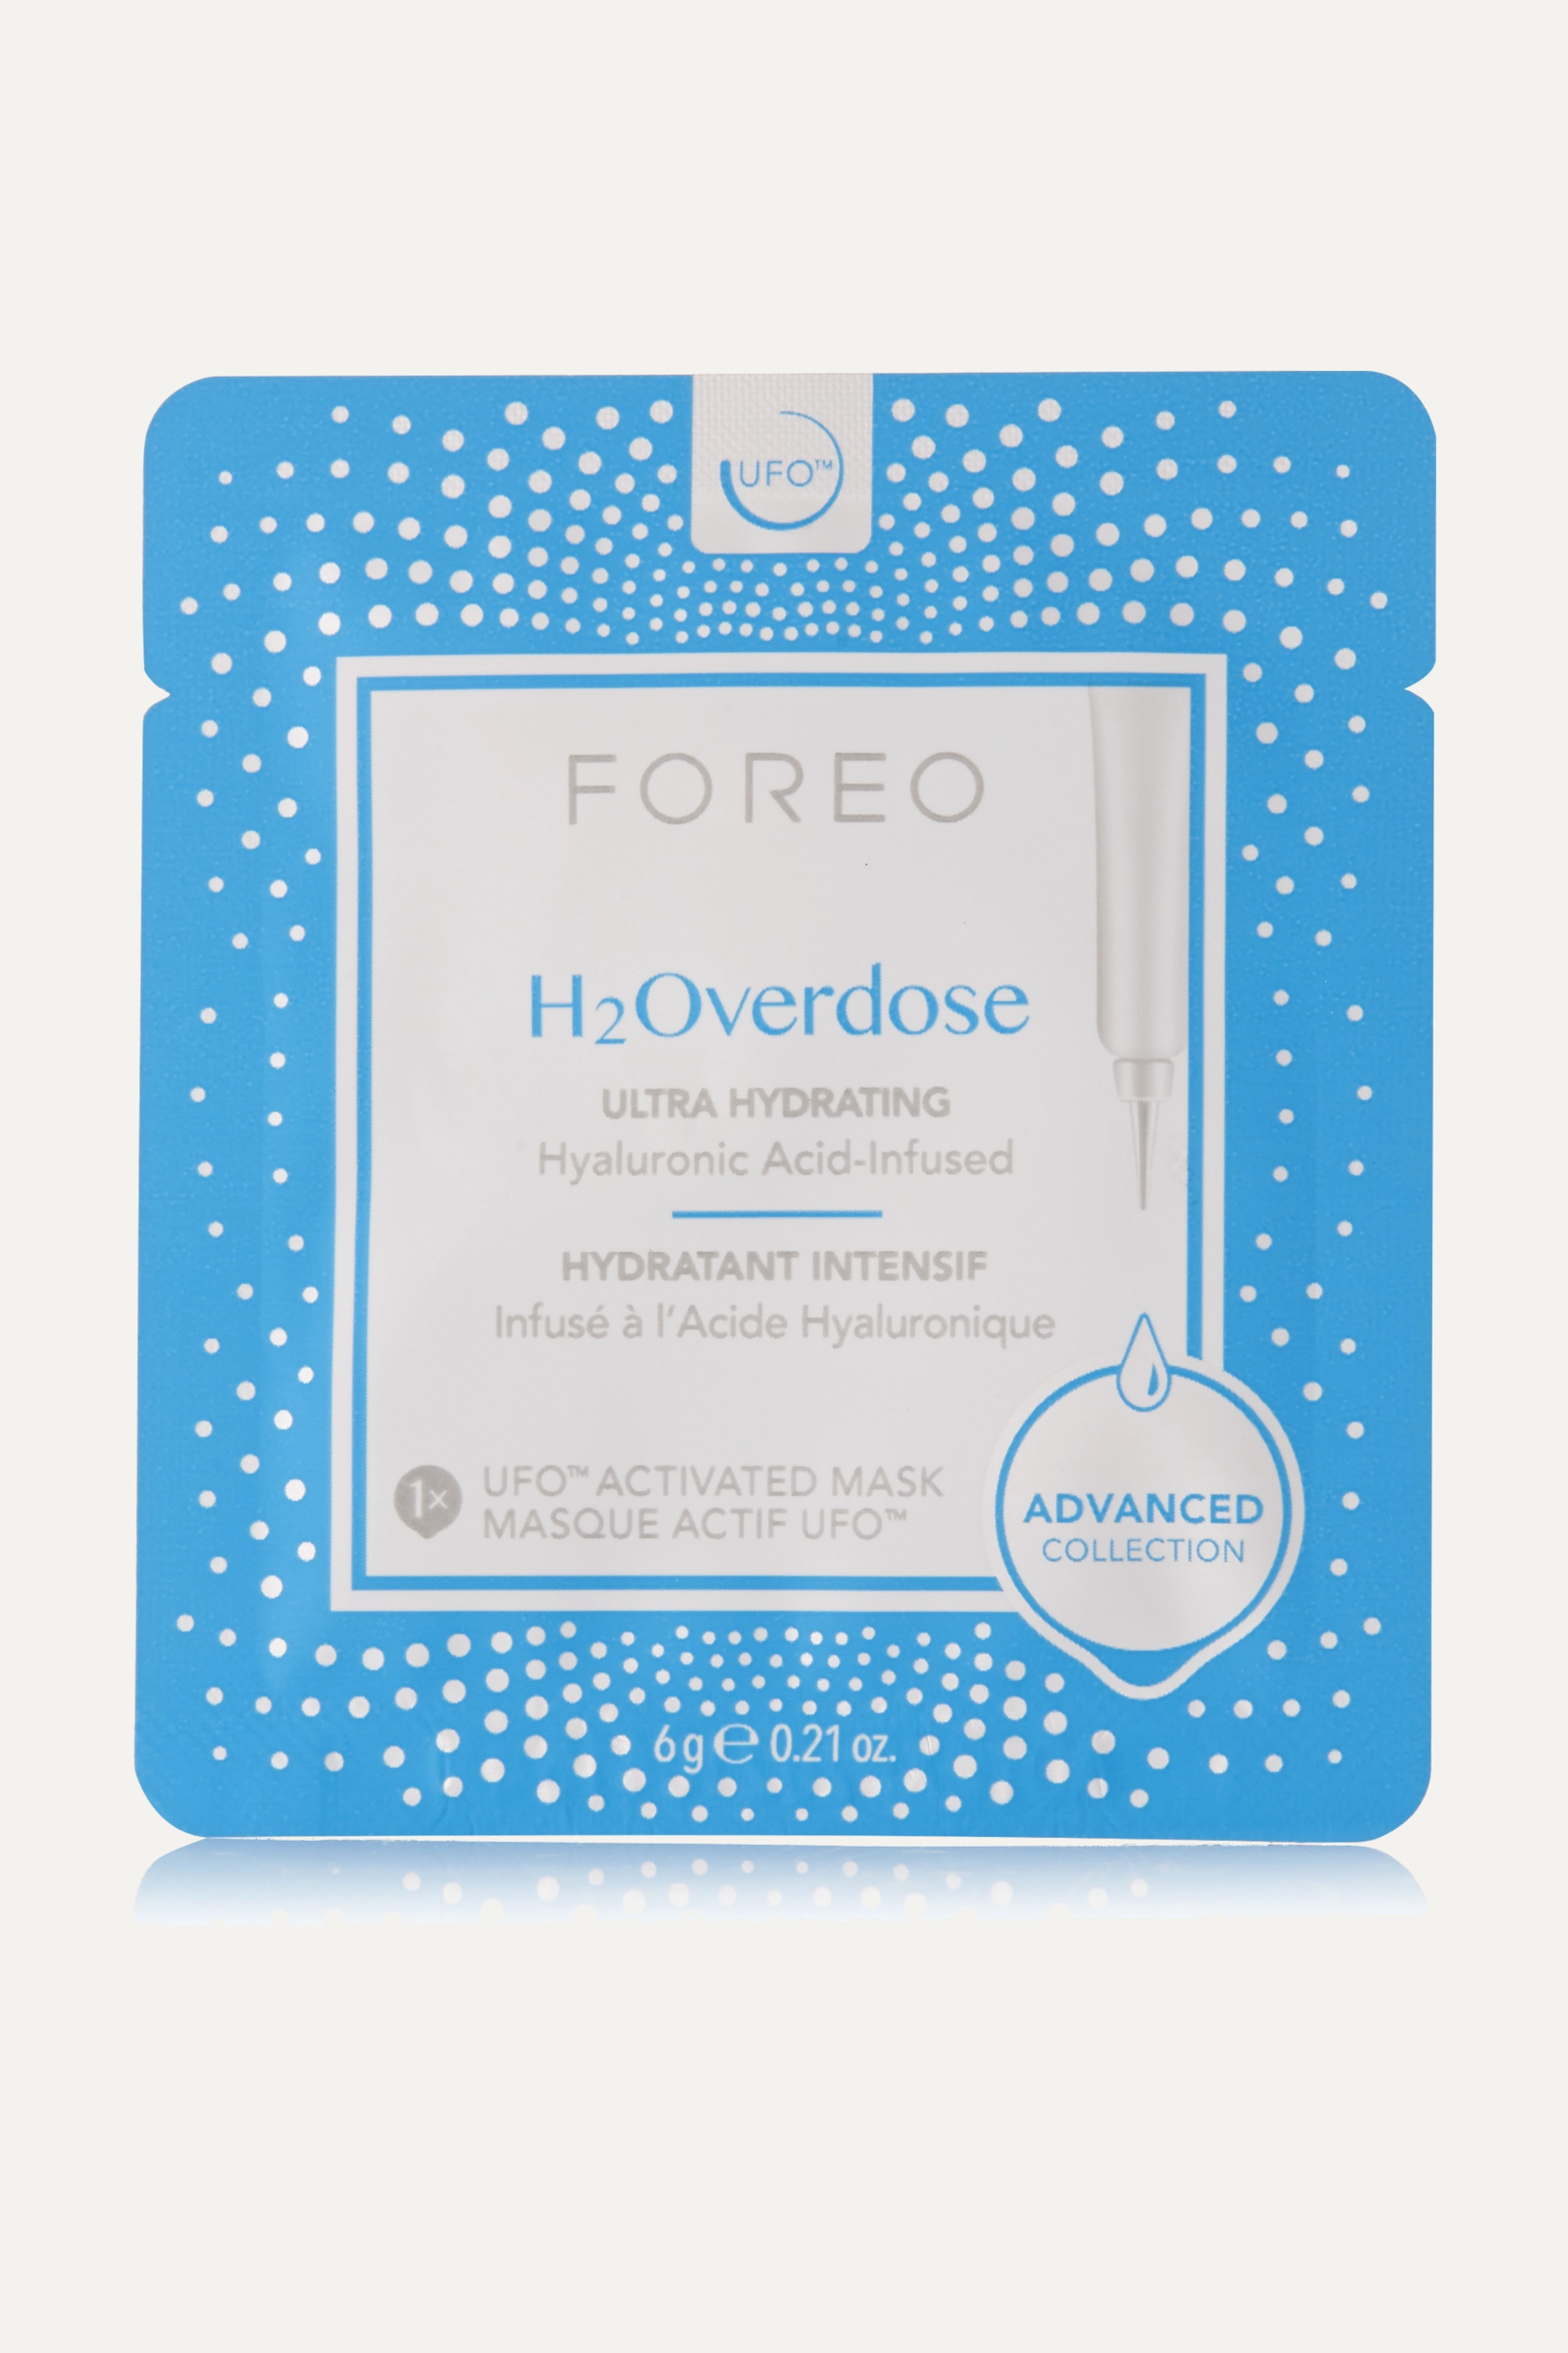 Foreo H2Overdose UFO Ultra Hydrating Face Mask for Dry Skin x 6